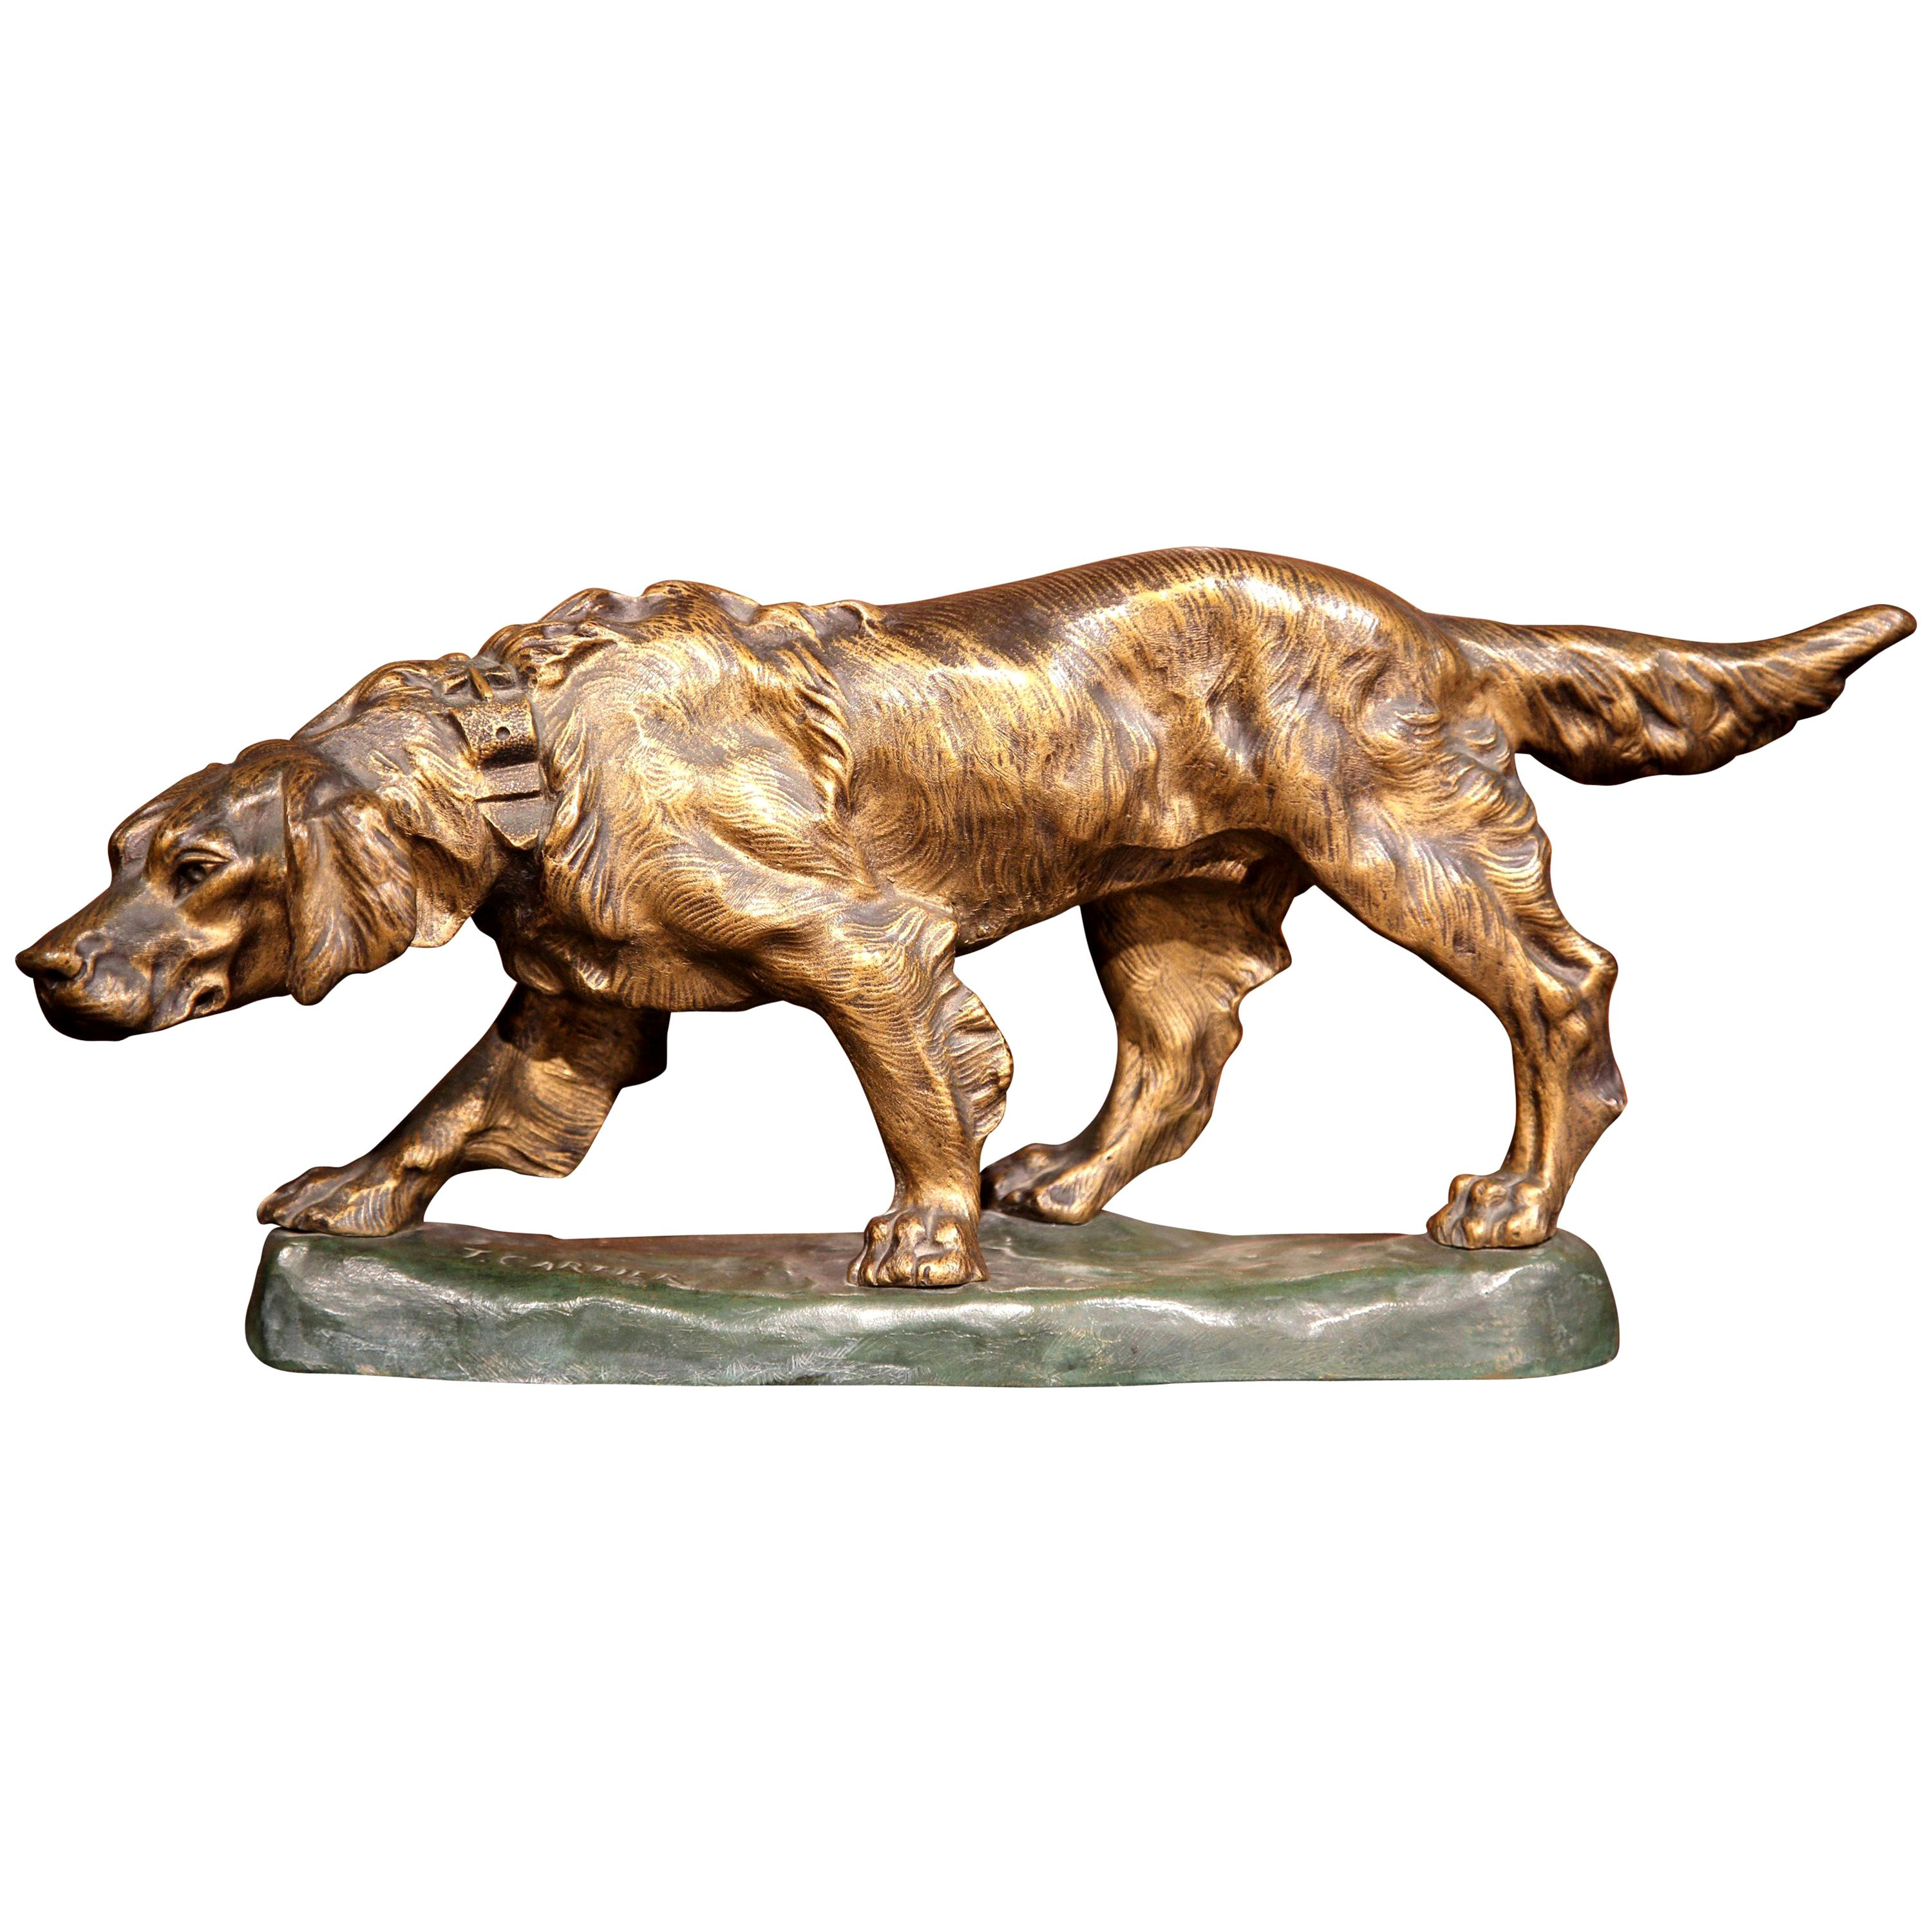 Early 20th Century French Patinated Bronze Dog Sculpture Signed T. Cartier